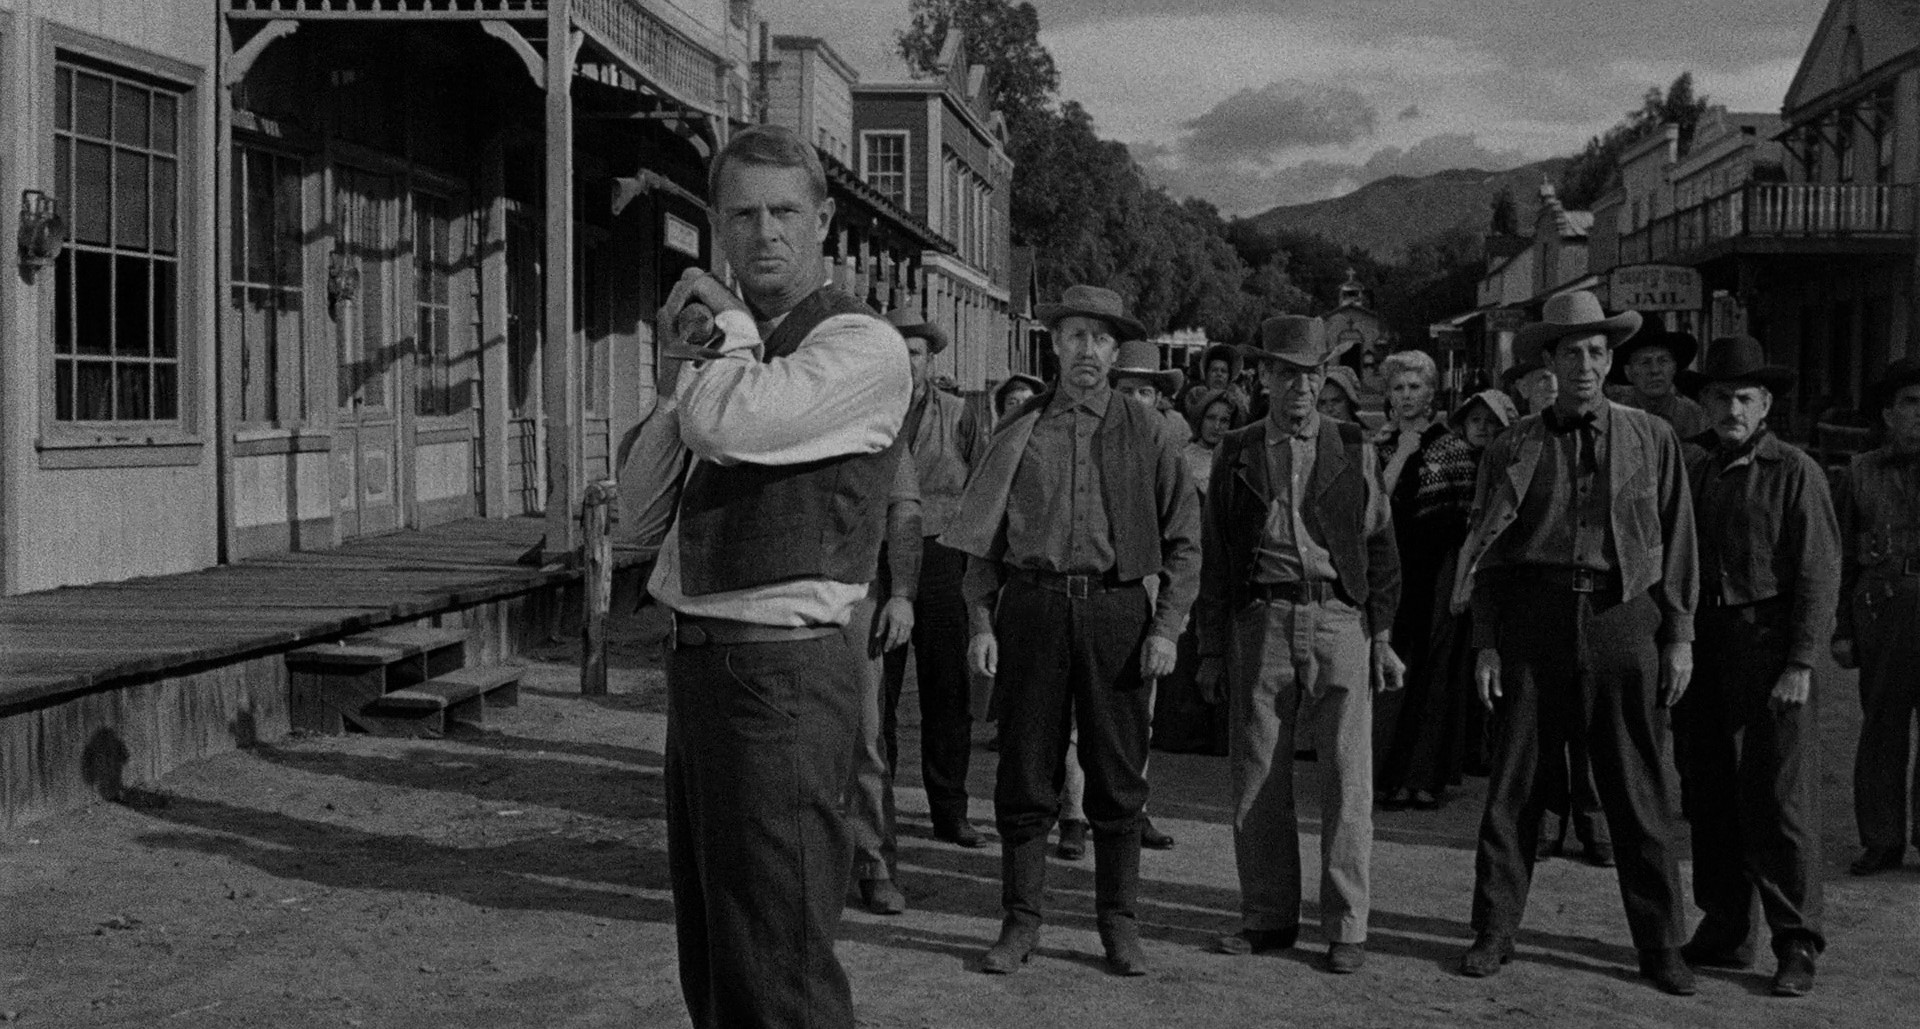 George Hansen (Sterling Hayden) armed with a whaling harpoon, with Prairie City citizens observing, squares off for a showdown with the town's hired gun.